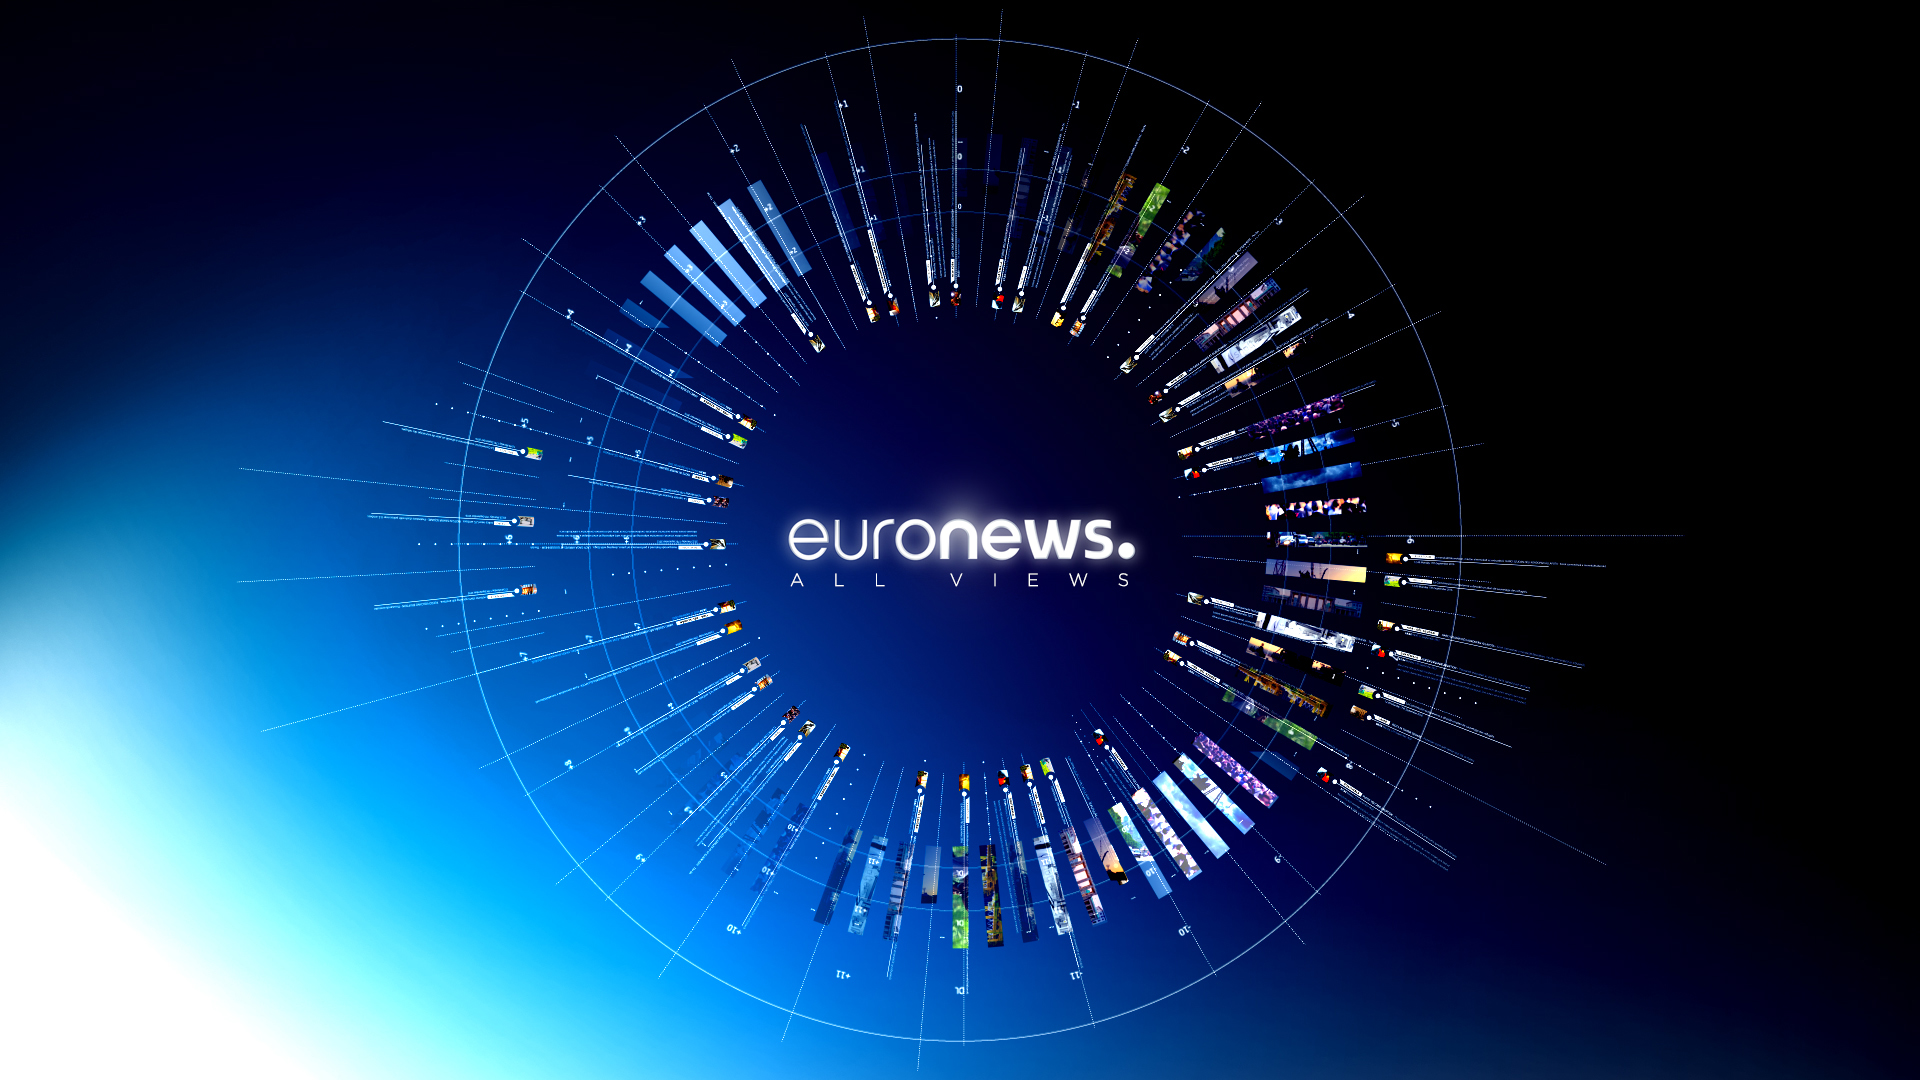 Lambie Nairn Rebrands News Channel Euronews To Give It